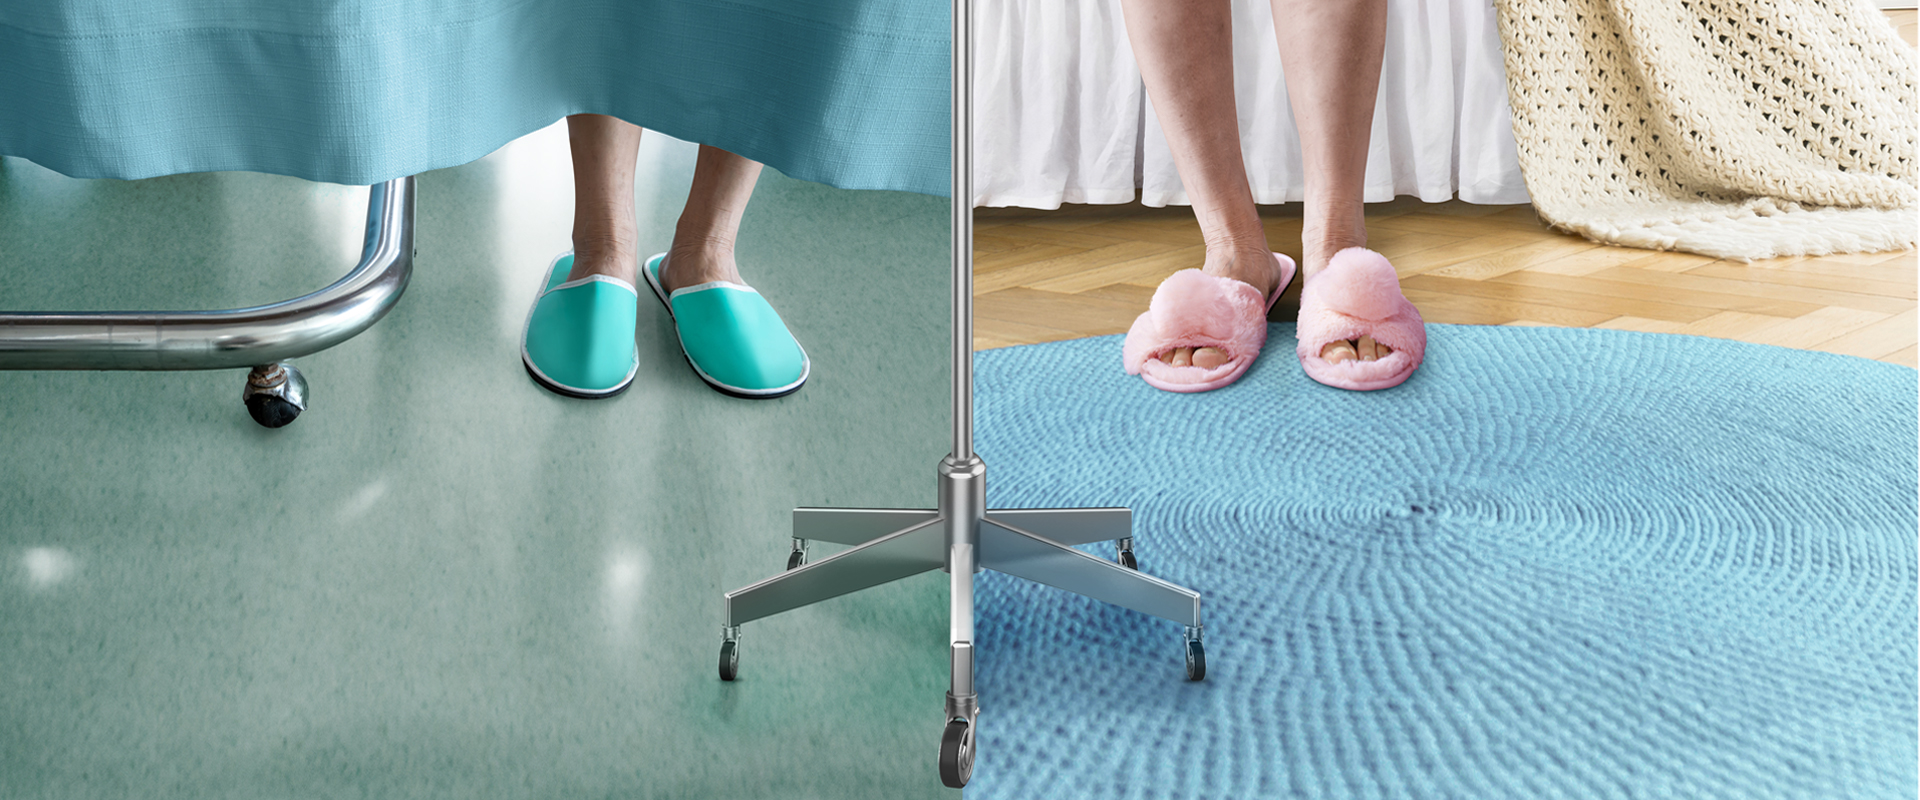 Slippers at hospital vs home